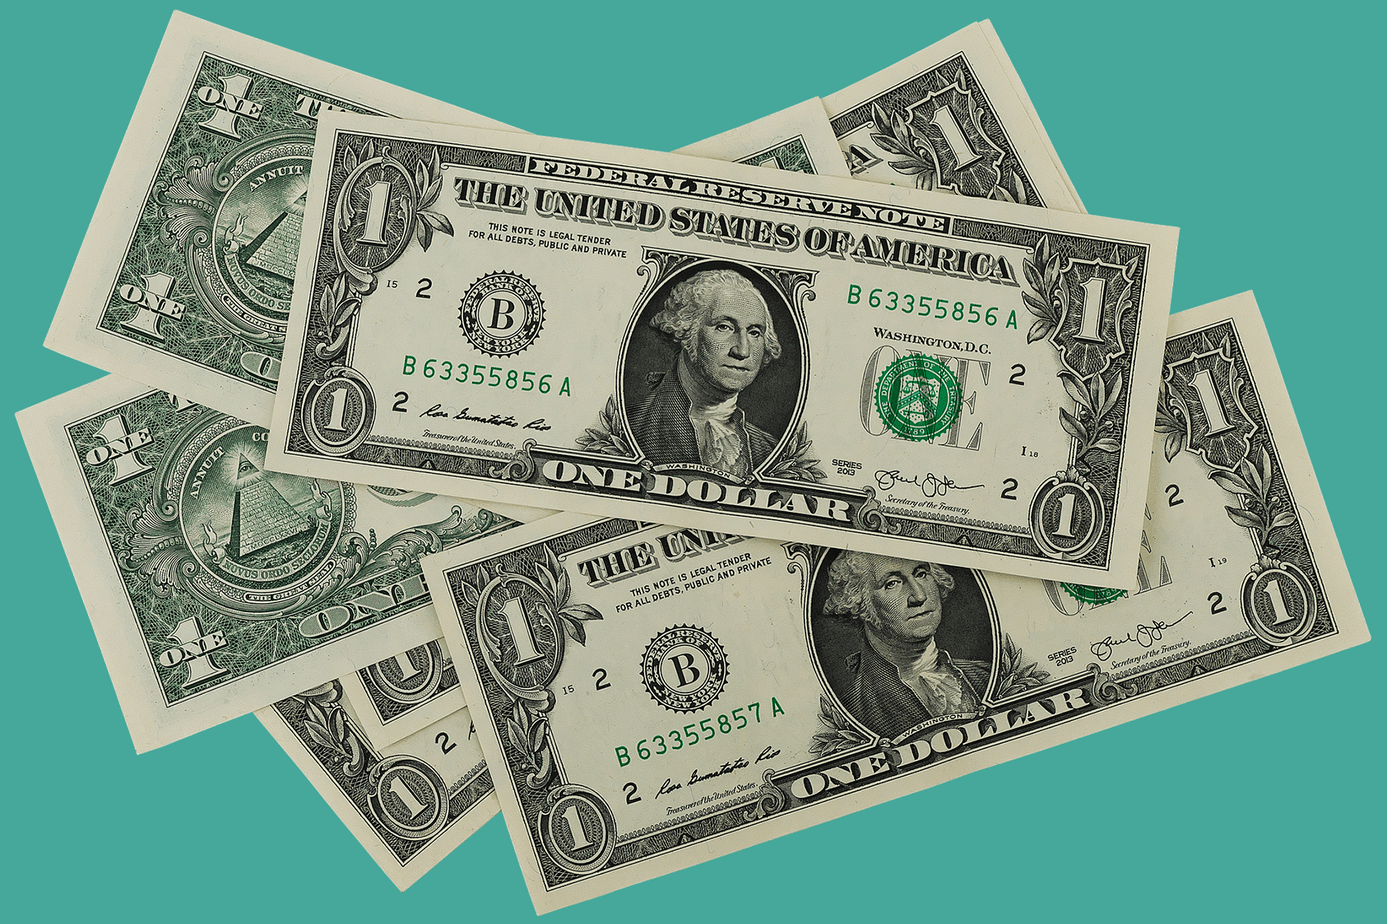 9+ Best Survey Sites to Join for Extra Money - Life and a Budget